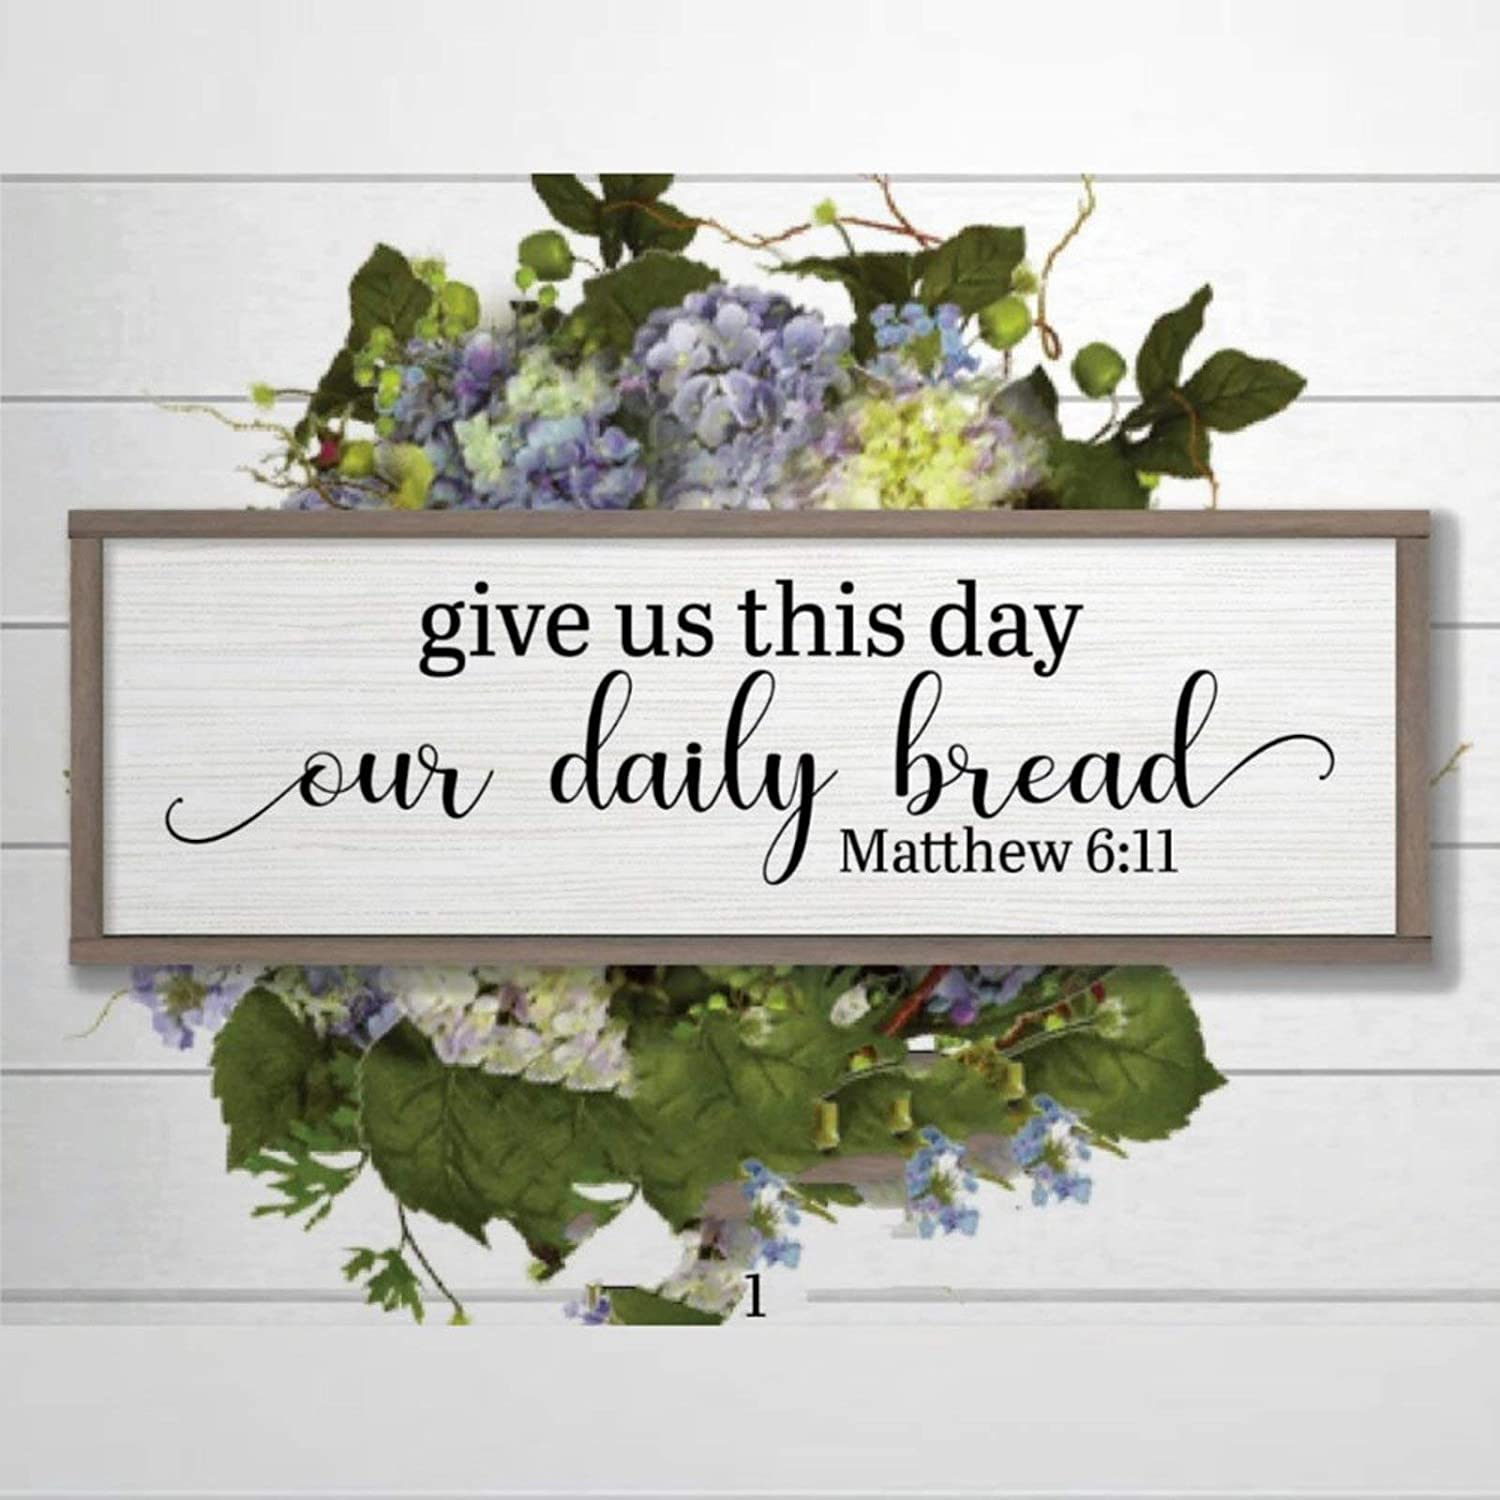 DONL9BAUER Framed Sign Give Us This Day Our Daily Bread Sign Farmhouse Decor Wood Sign Plaque Wall Hanging Christian Verse Present, Bible Saying Quotes, Scripture Wall Art Home Decor